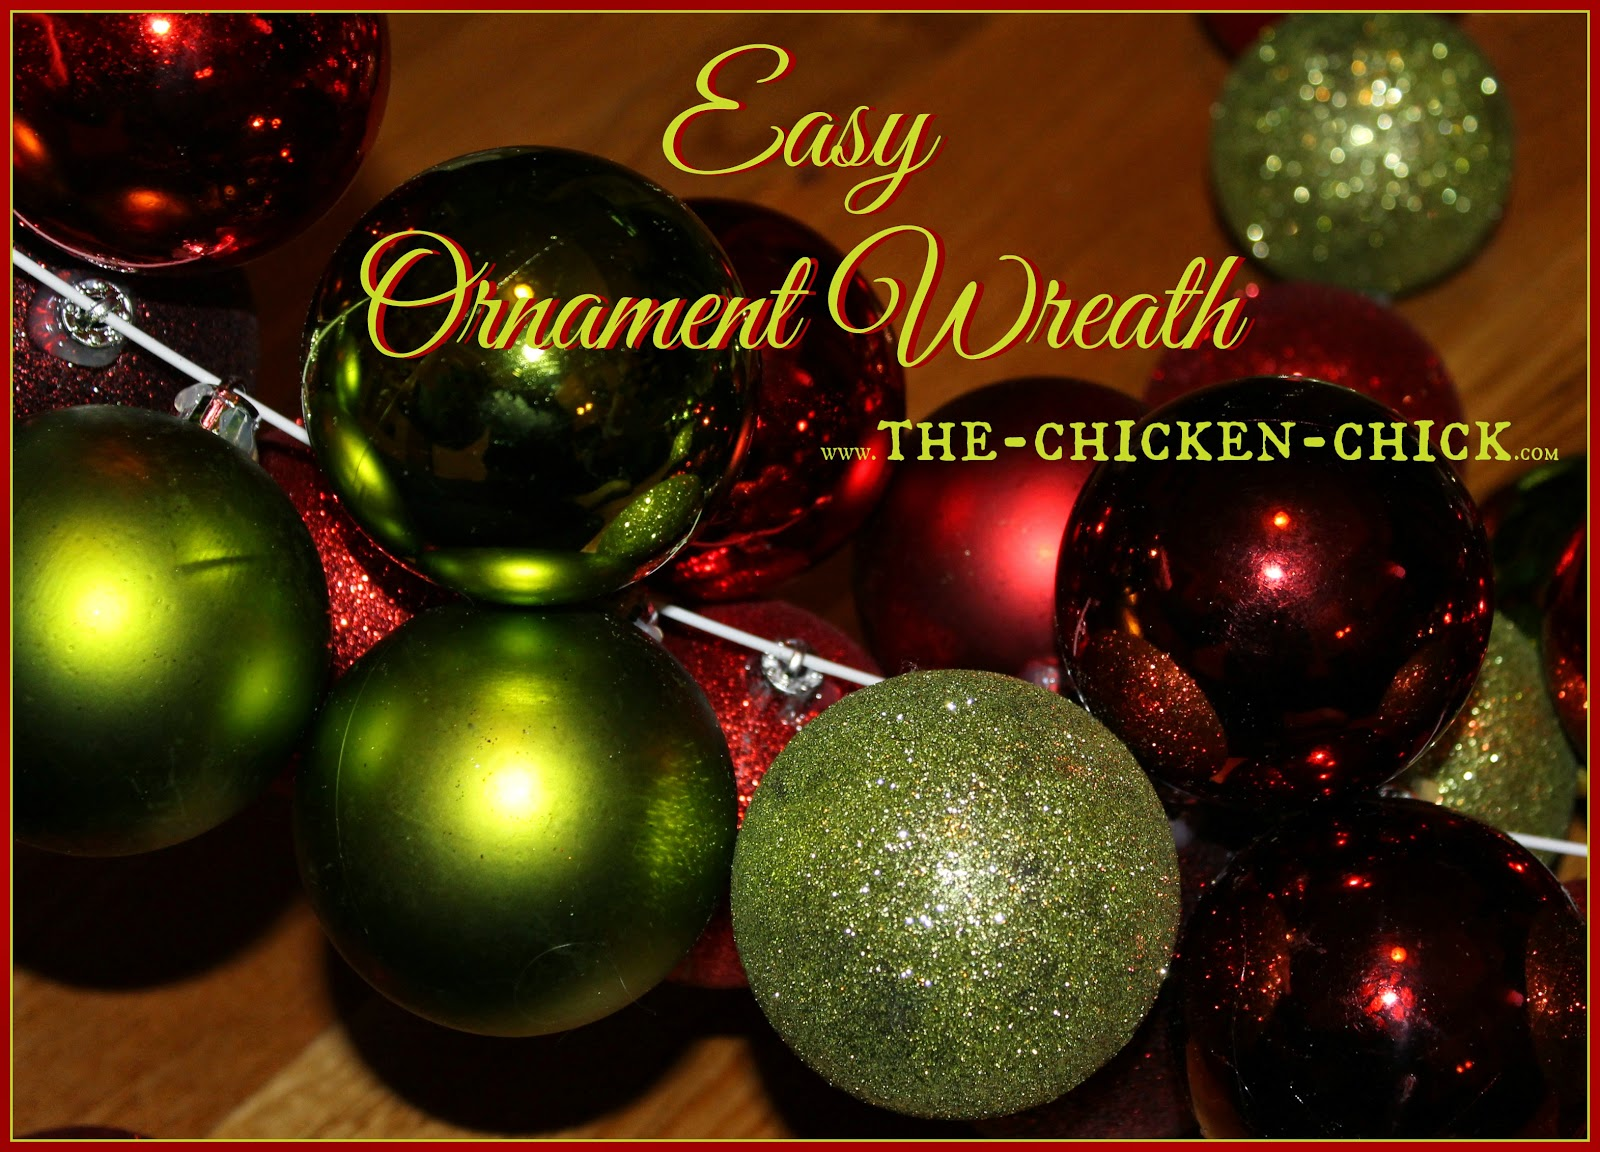 This ornament wreath is undoubtedly the easiest and one of the most inexpensive holiday wreaths I've ever made. I can be constructed with dollar store plastic ornaments or an eclectic collection of mis-matched ornaments from Christmases past.